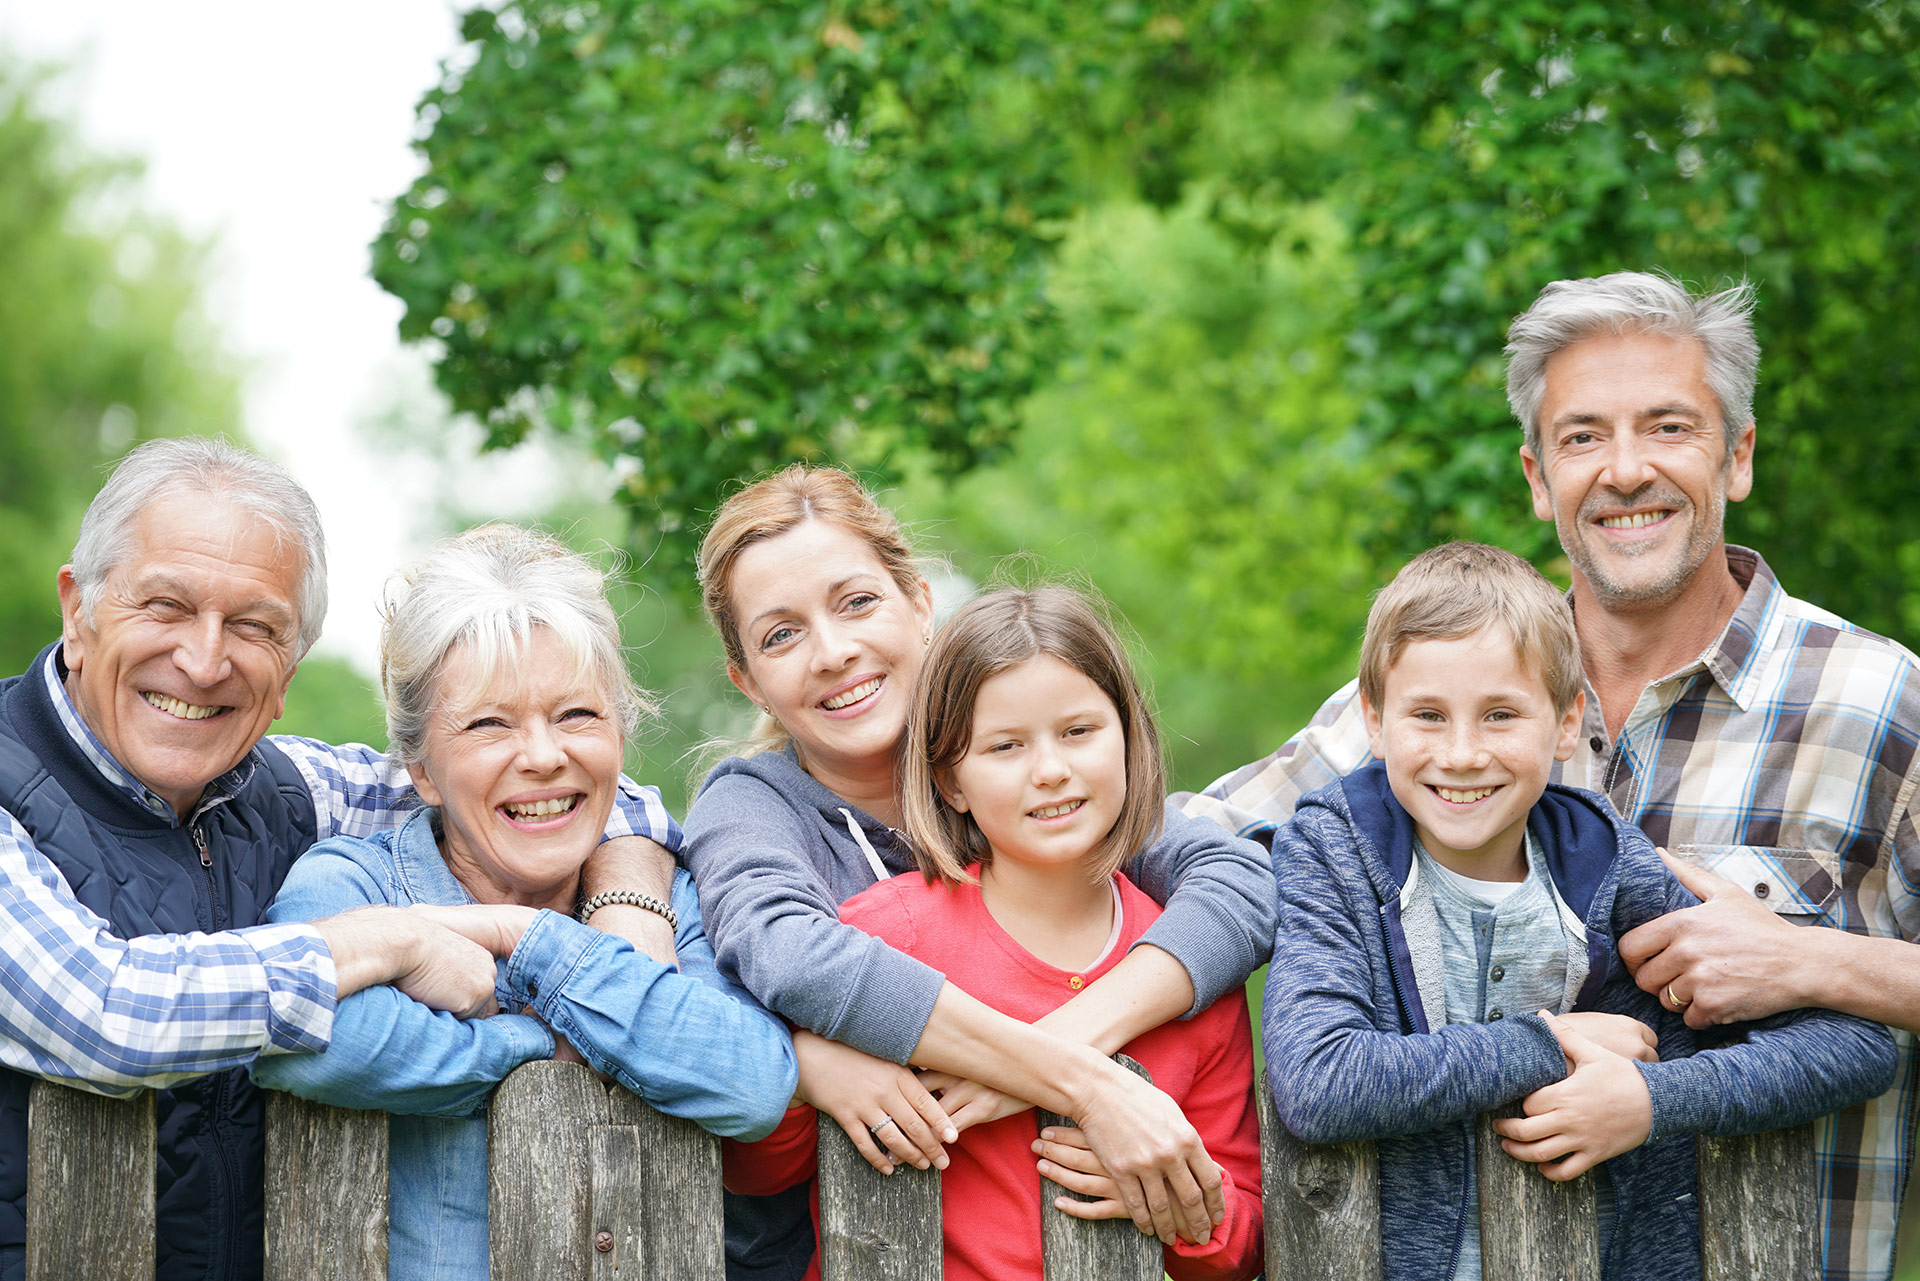 Happy family of children, parents, and grandparents leaning on fence.